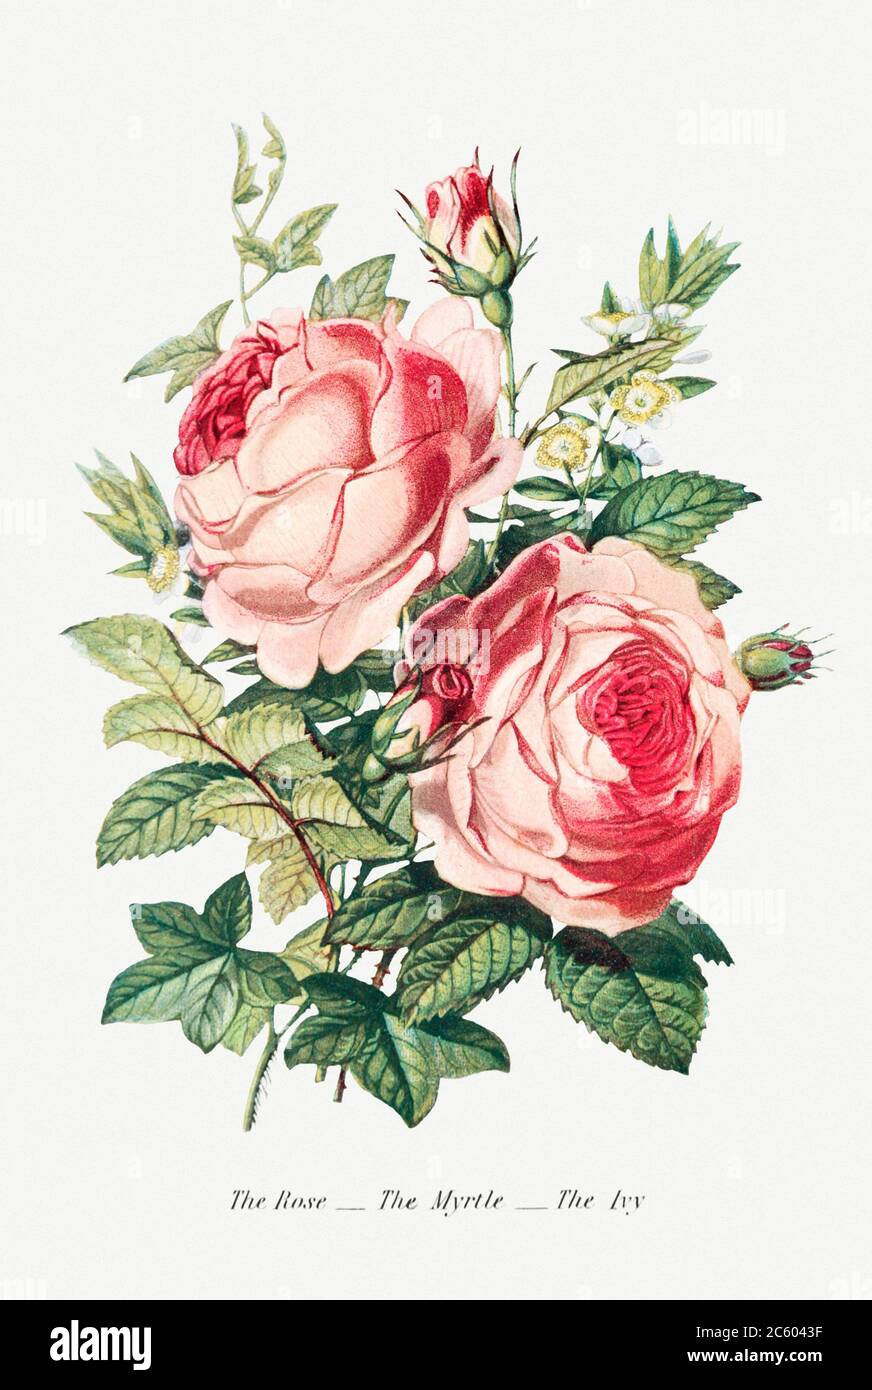 The Rose, the Myrtle and the Ivy from The Language of Flowers, or, Floral Emblems of Thoughts, Feelings, and Sentime.jpg - 2C6043F Stock Photo